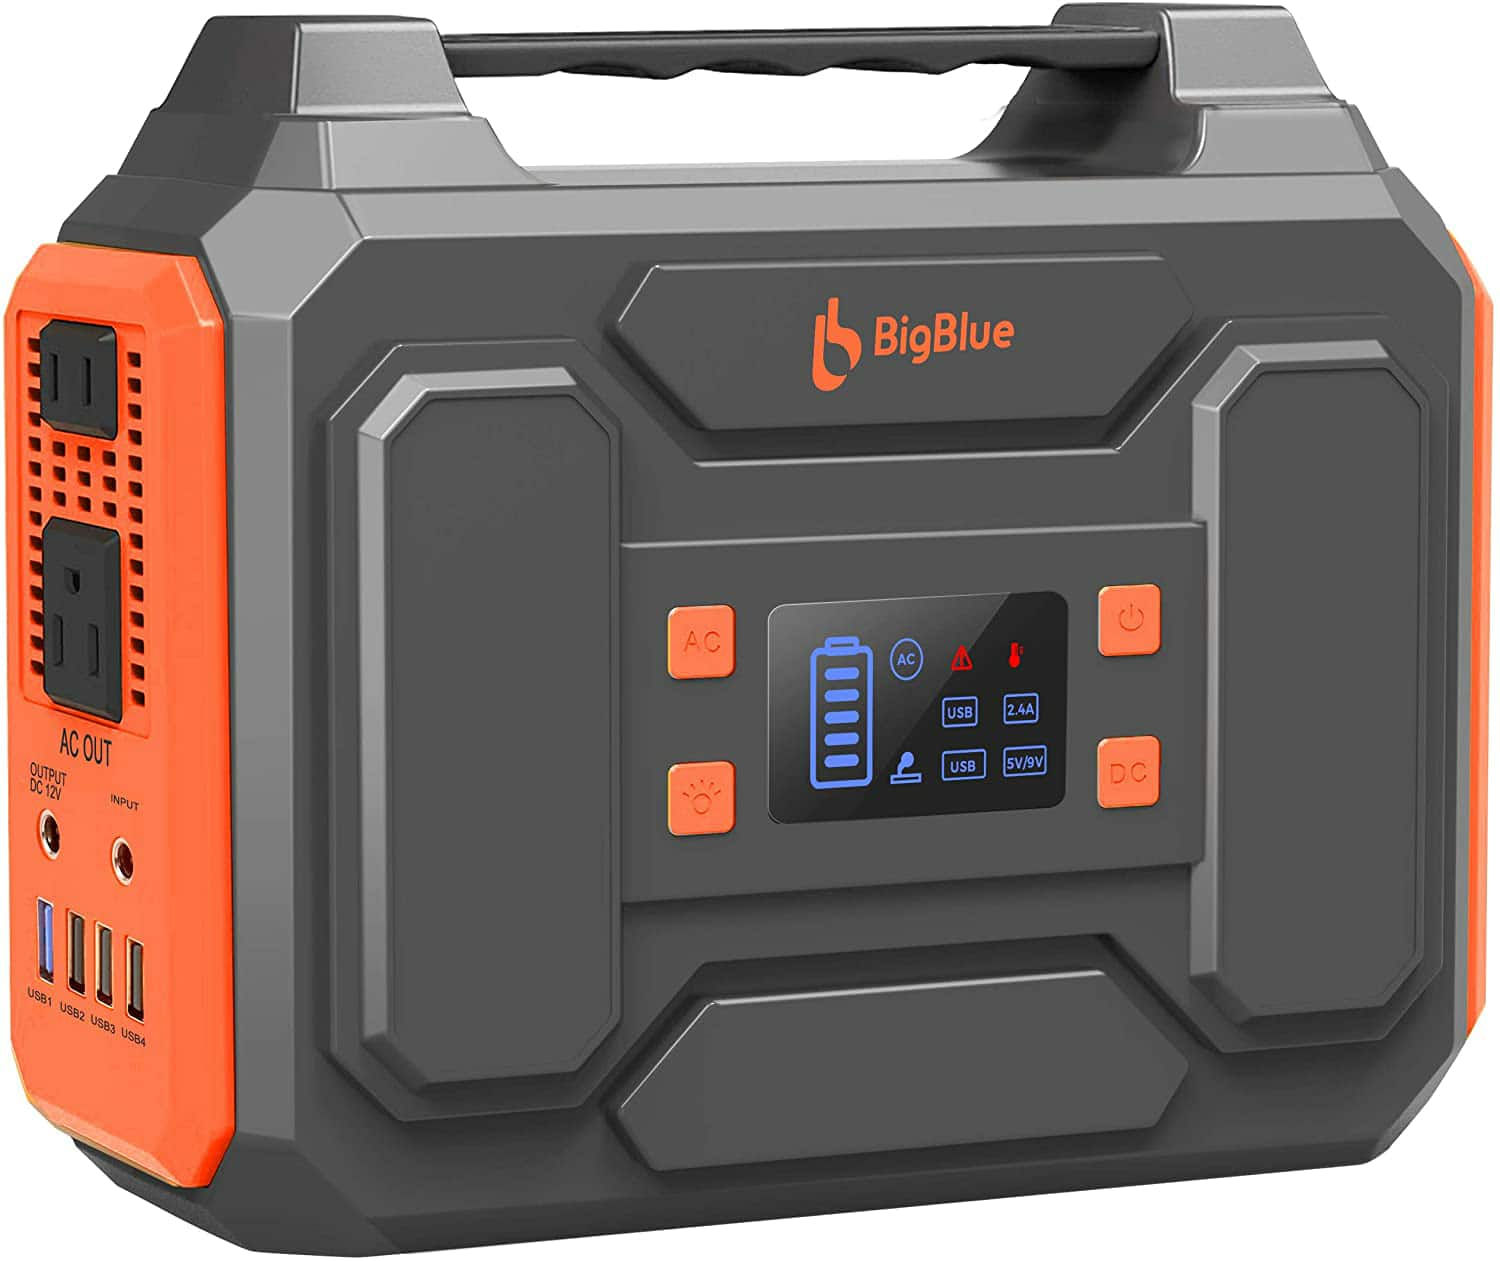 Amazon.com: 250Wh Portable Generator, BigBlue 67500mAh Power Station with 110V Pure Sine Wave AC Outlets/2 DC/4 USB Ports, Camping Accessories with Fast Charge $144.99